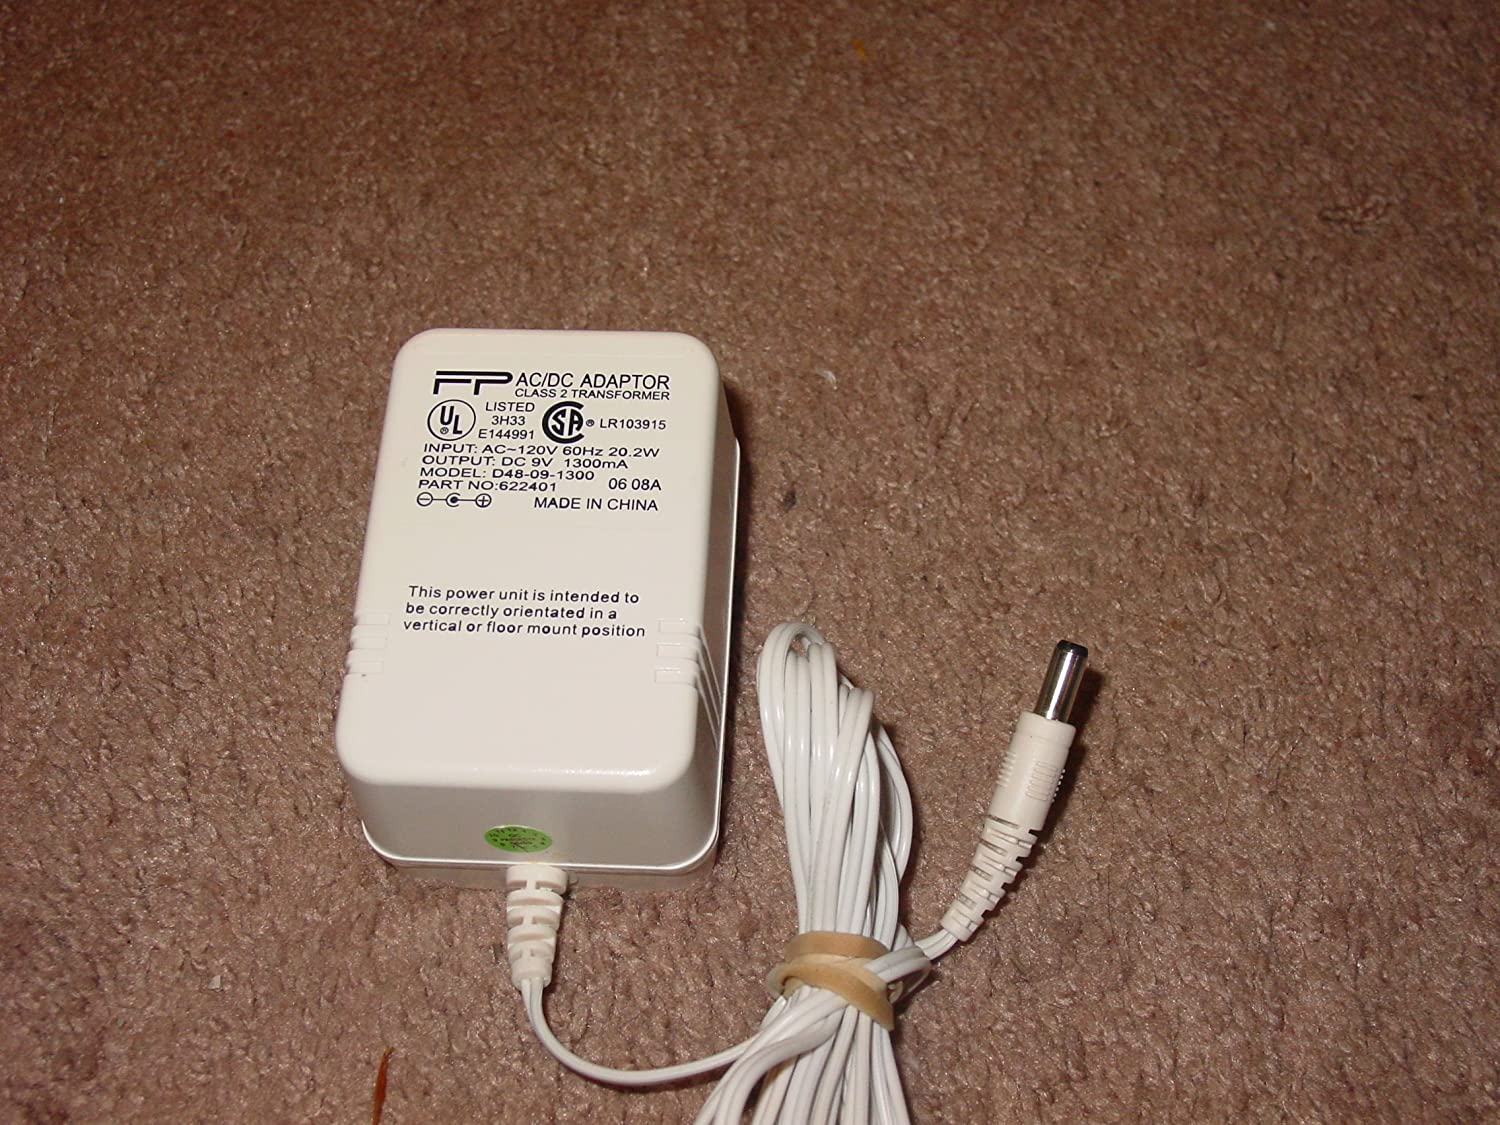 FP PP AC Adapter Power Supply 9V DC 1300mA 20.2W Model Part D48-09-1300 622401